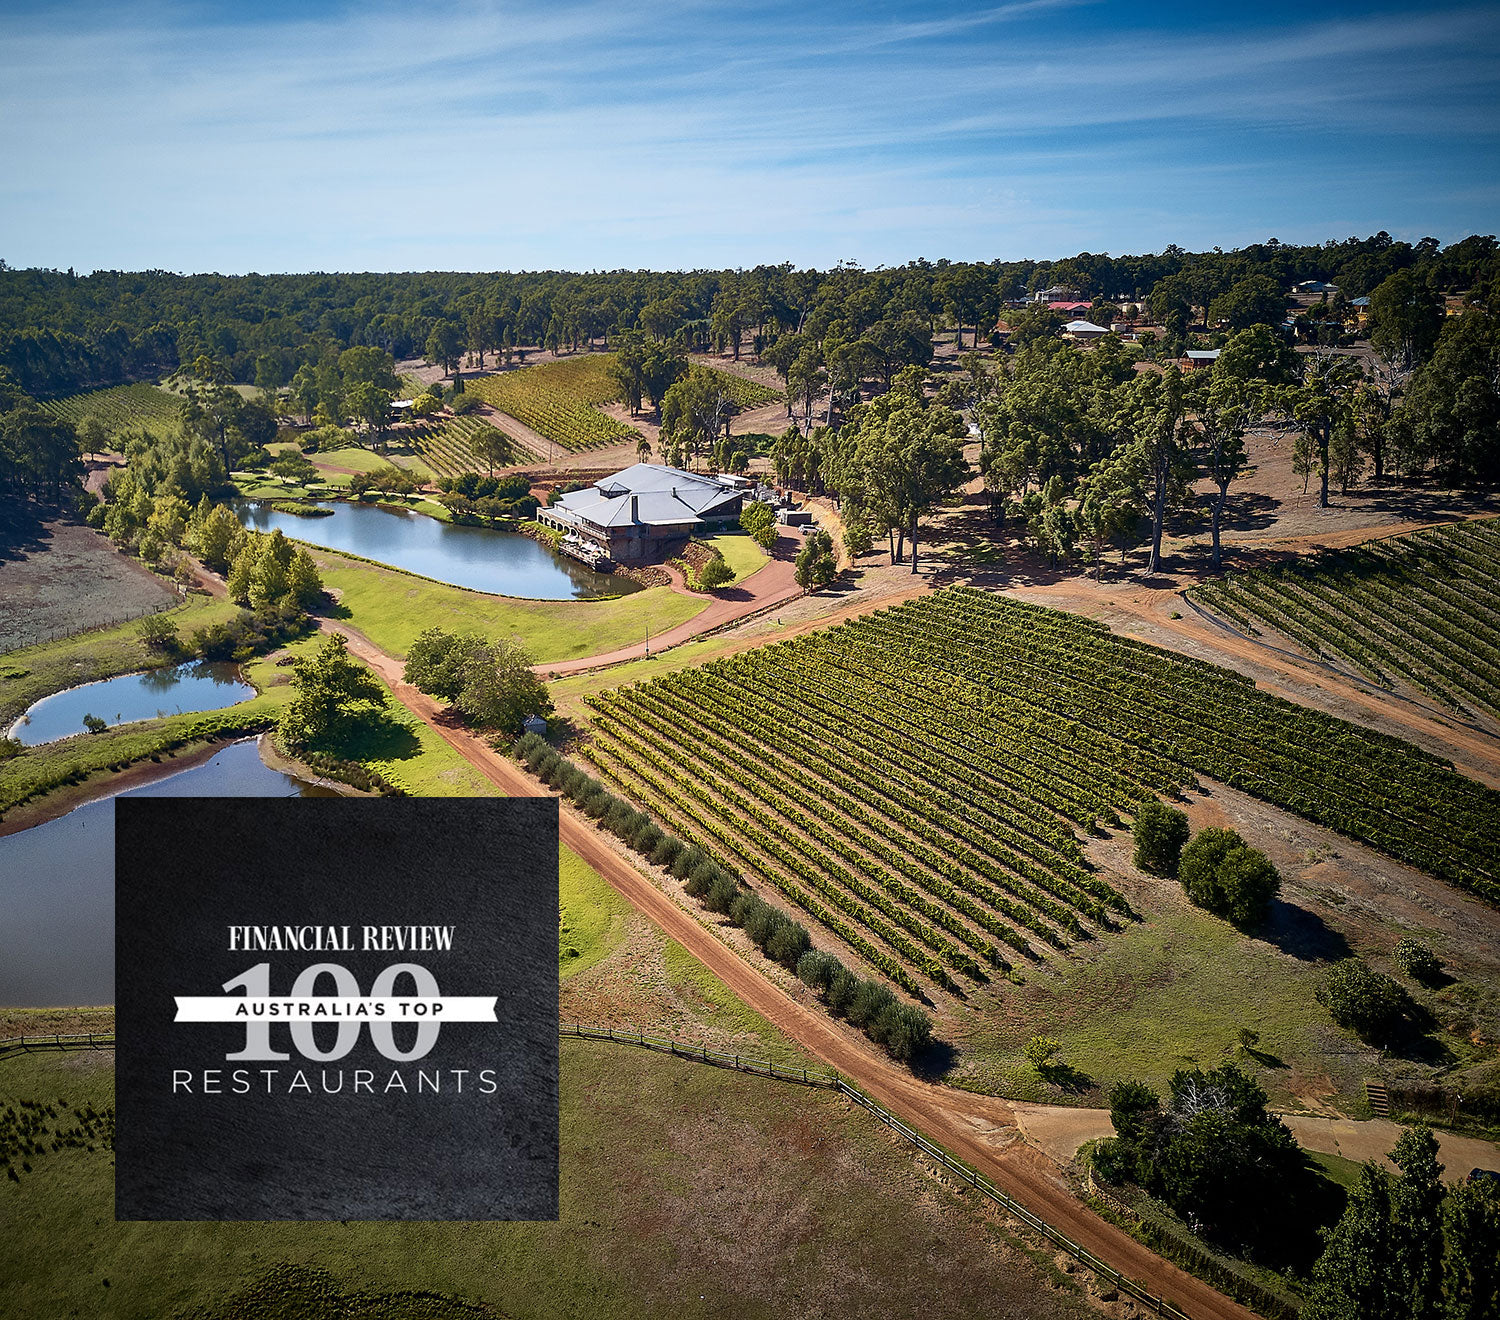 Millbrook in Australia's Top 100 Restaurants